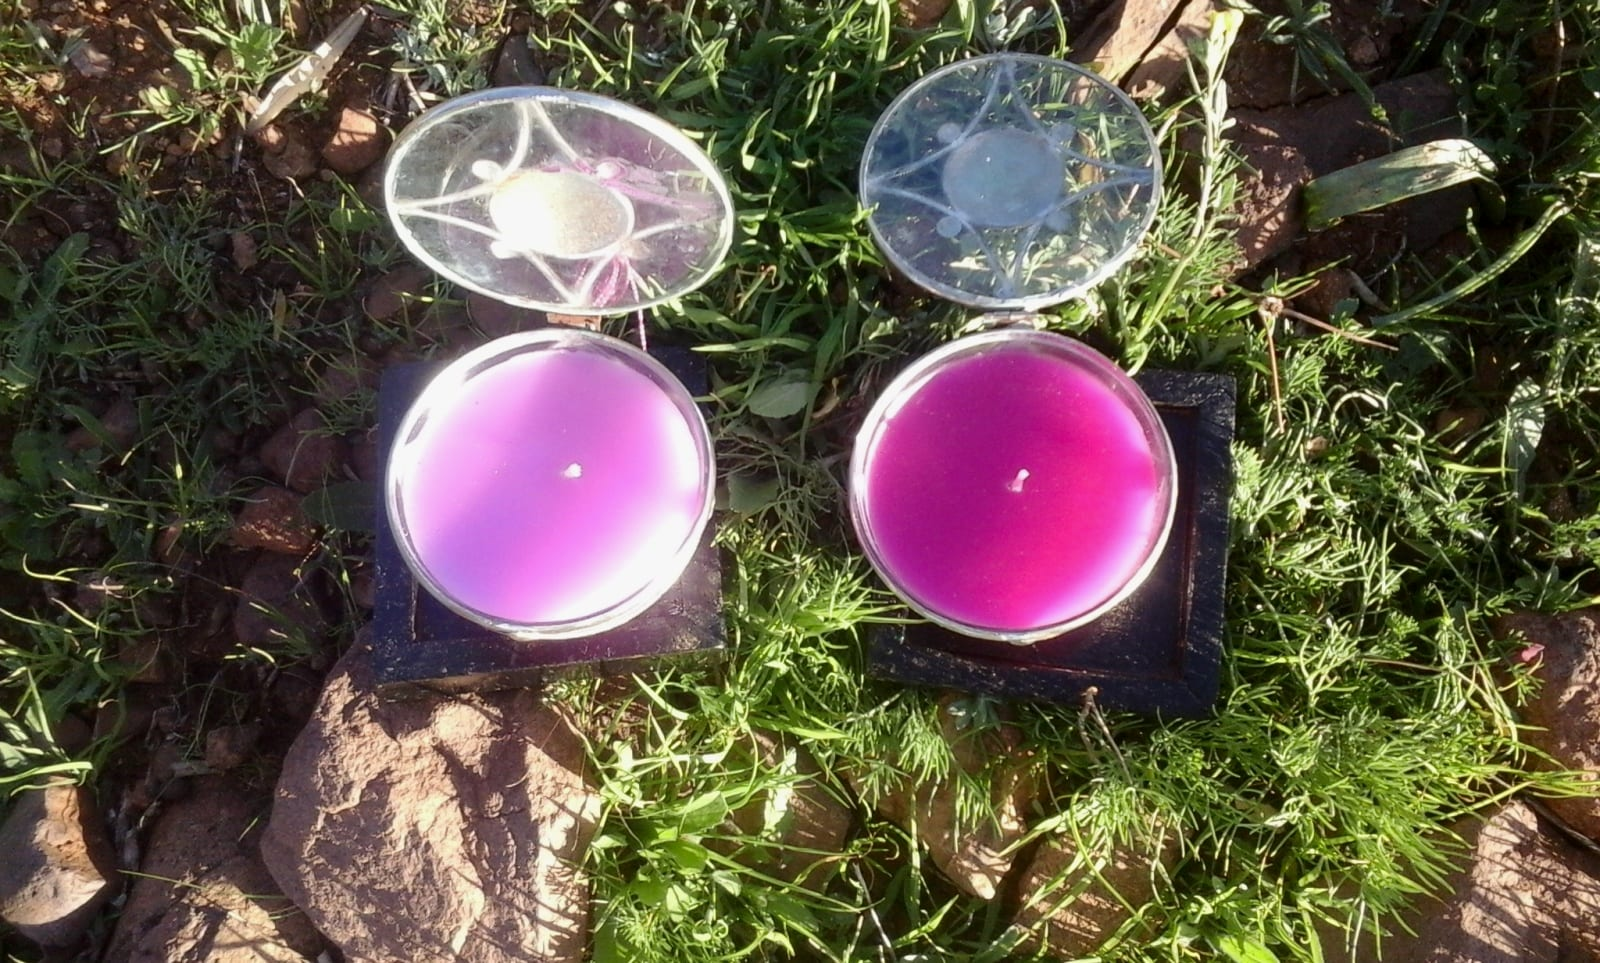 A candle Dye, Wax, and Glass cup Pink Morocco